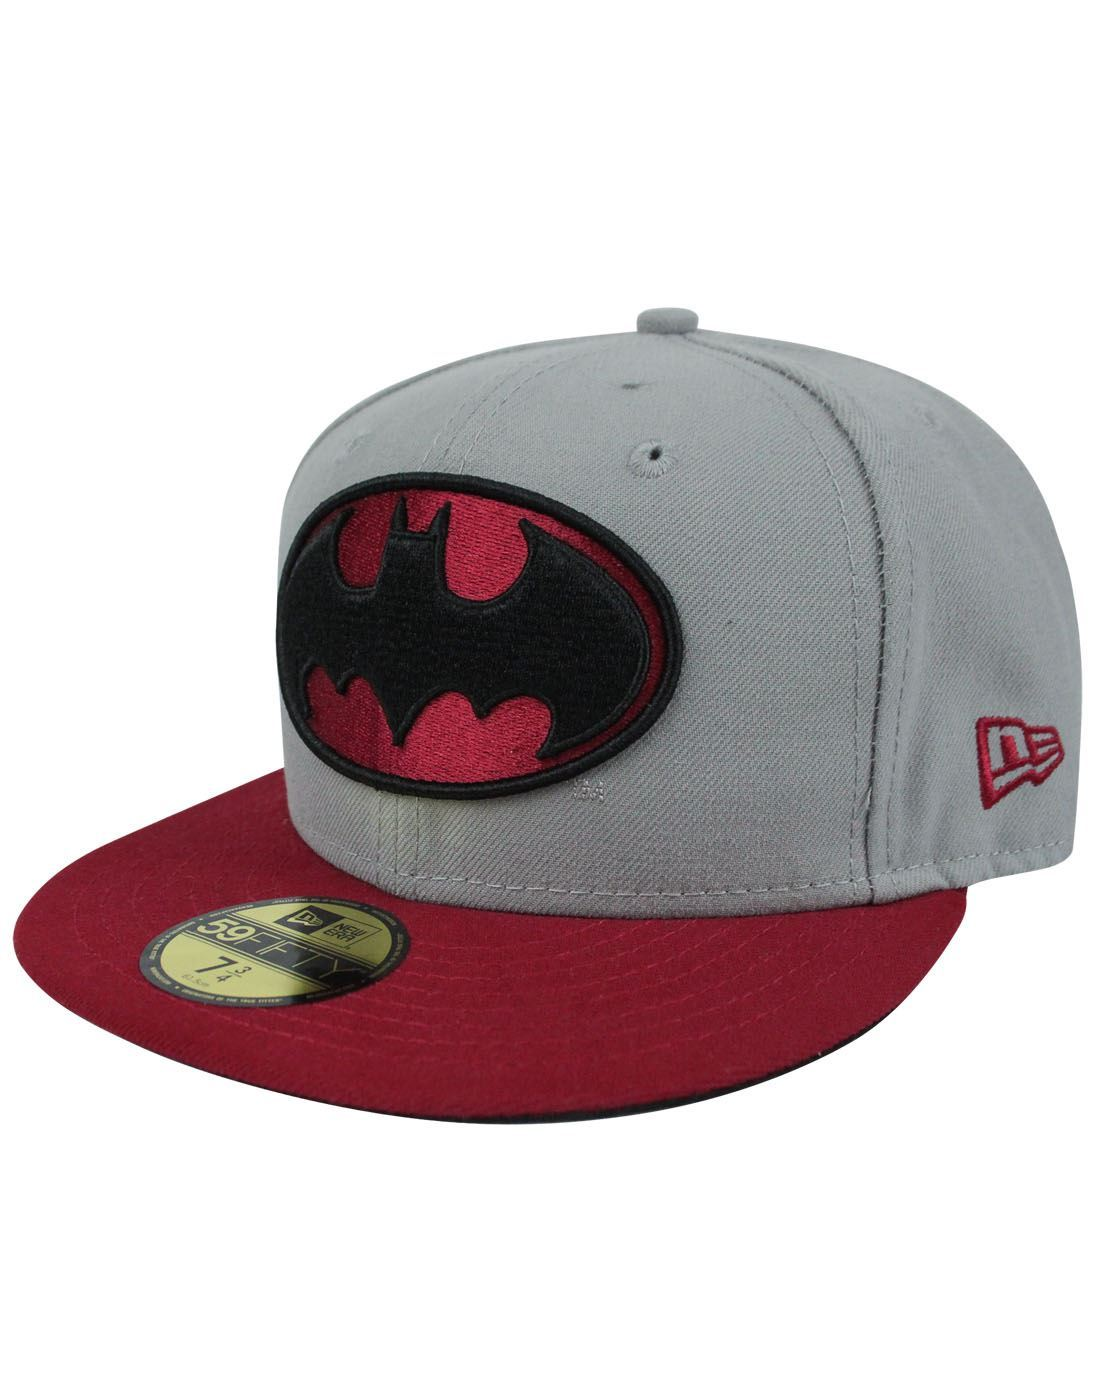 ed7430d28 New Era 59Fifty Seasonal Hero Batman Cap – Vanilla Underground